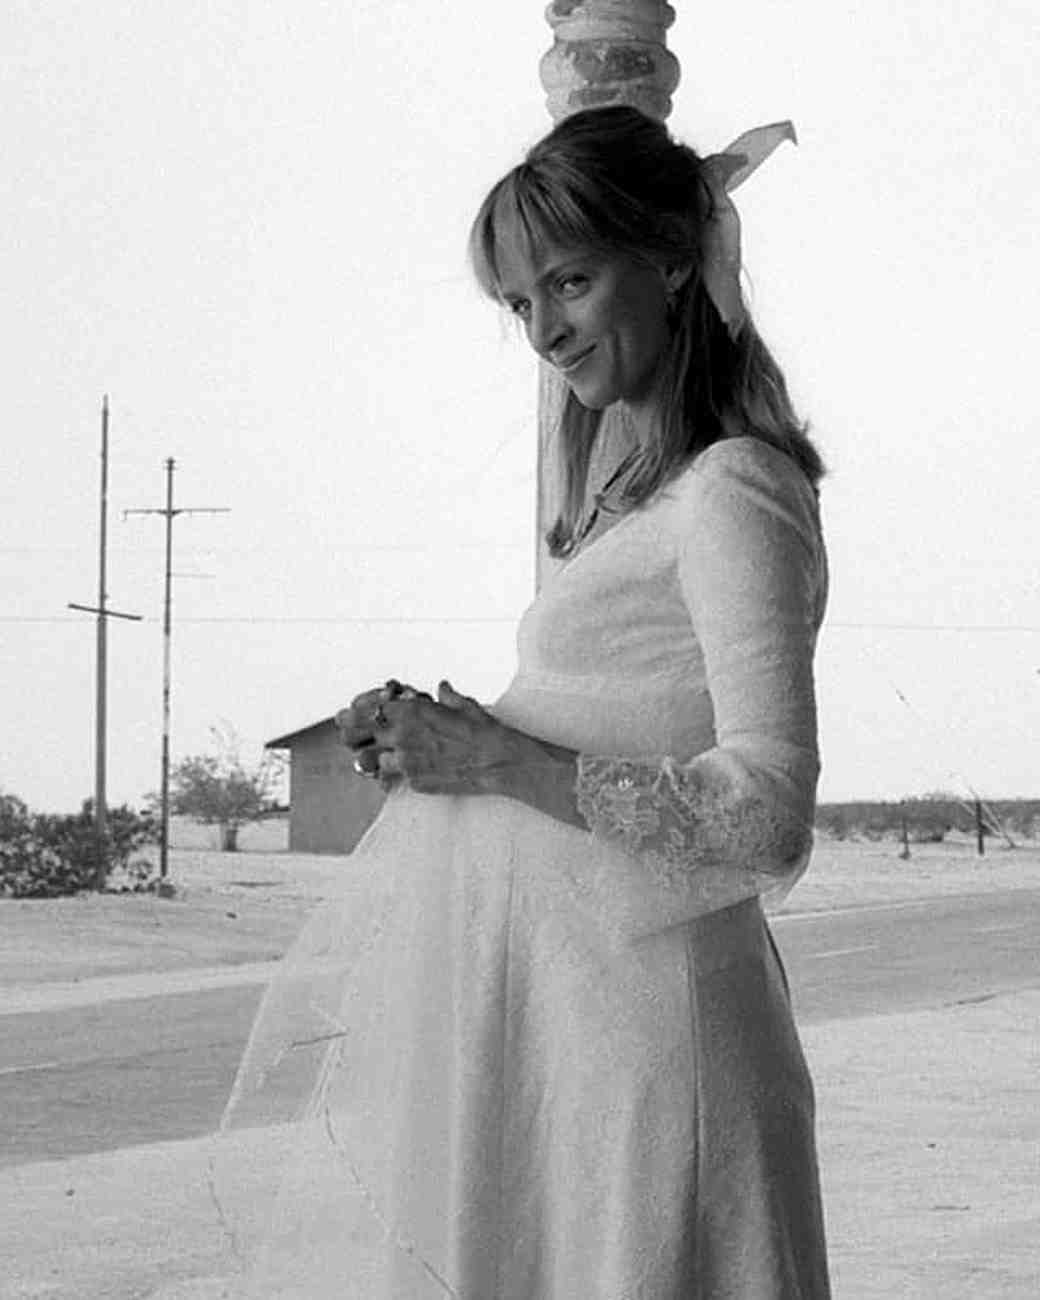 movie-wedding-dresses-kill-bill-uma-therman-0316.jpg